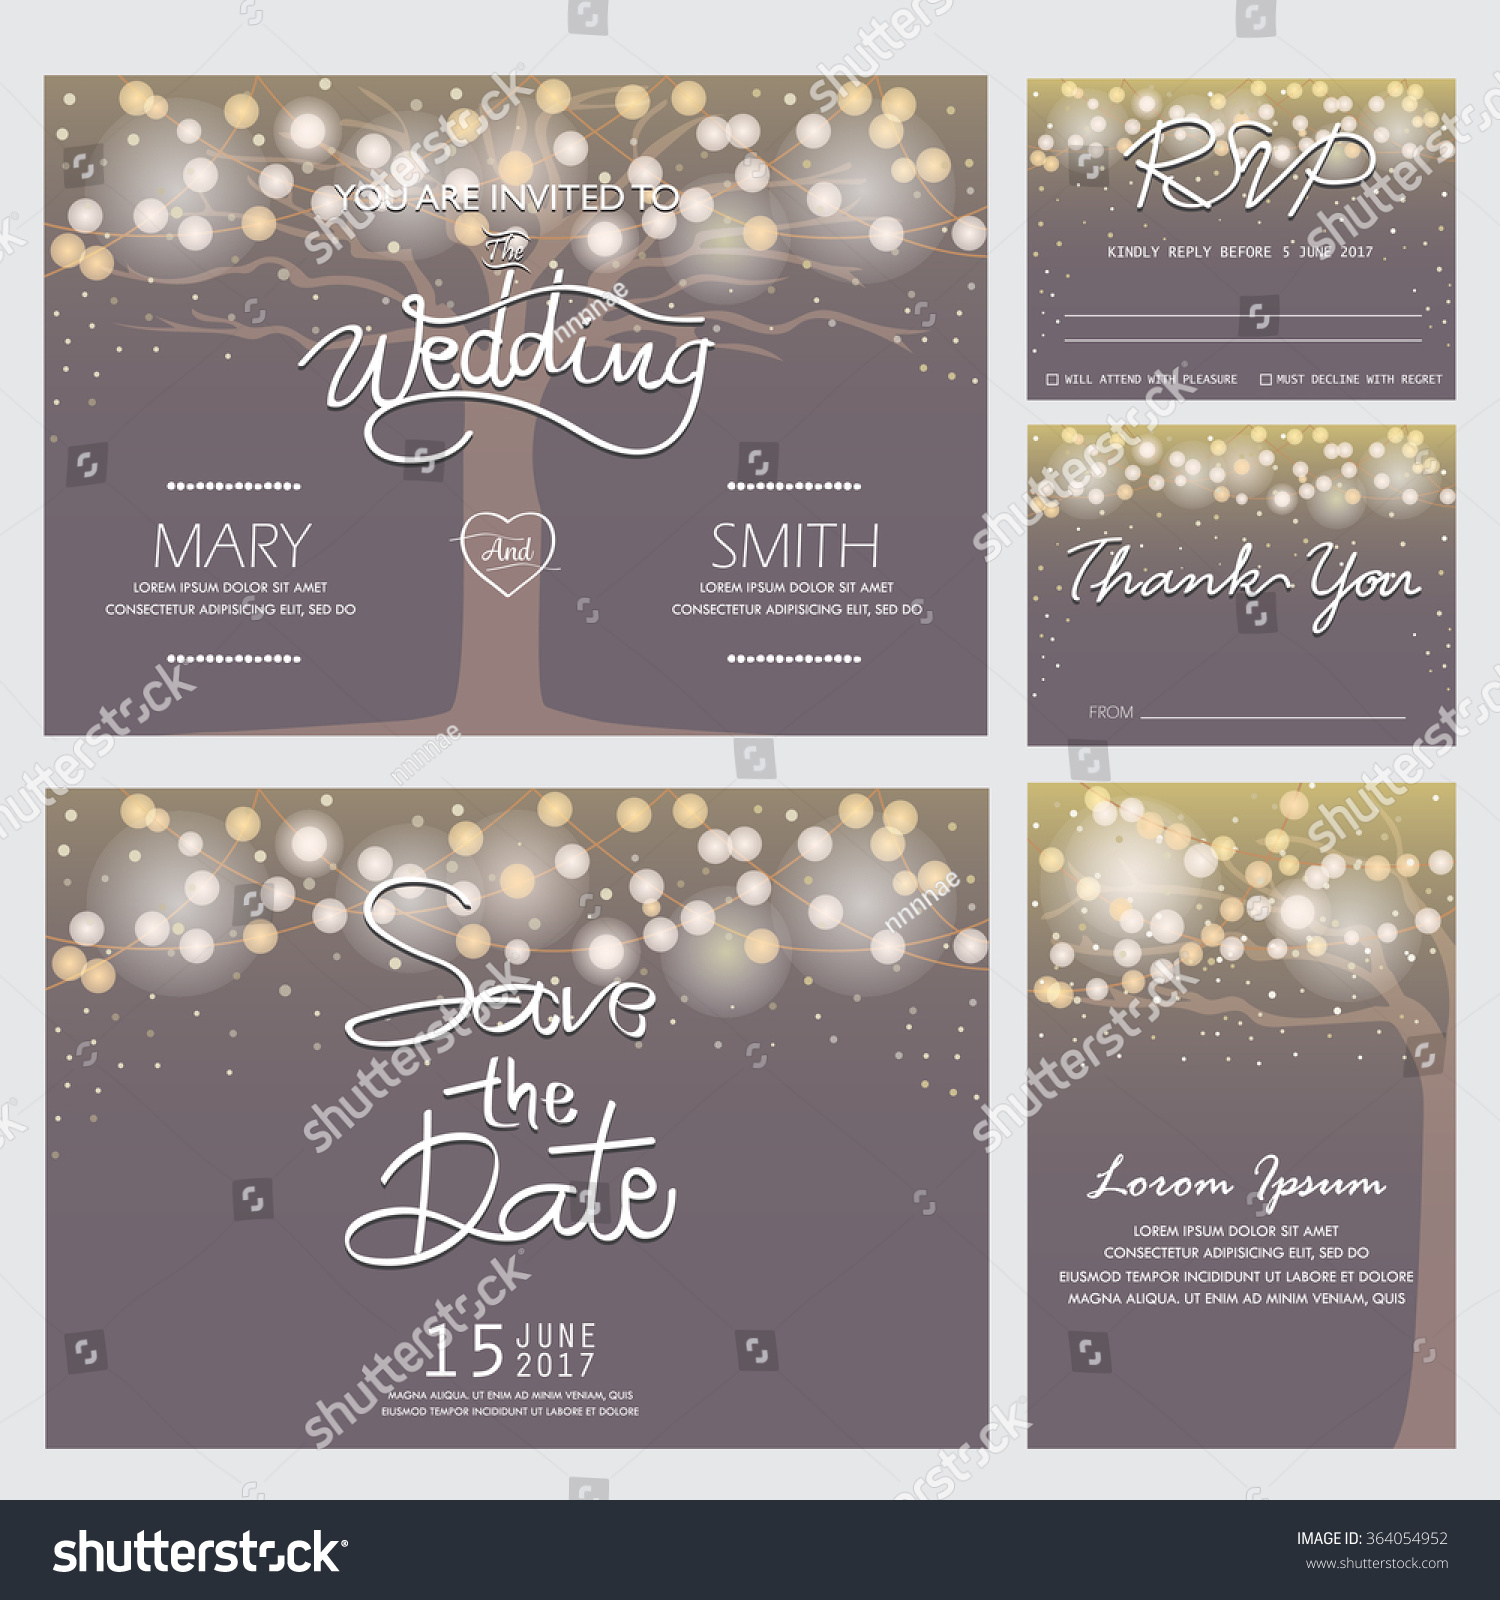 Wedding Invitation RSVP Thank You Card Stock Vector 364054952 ...